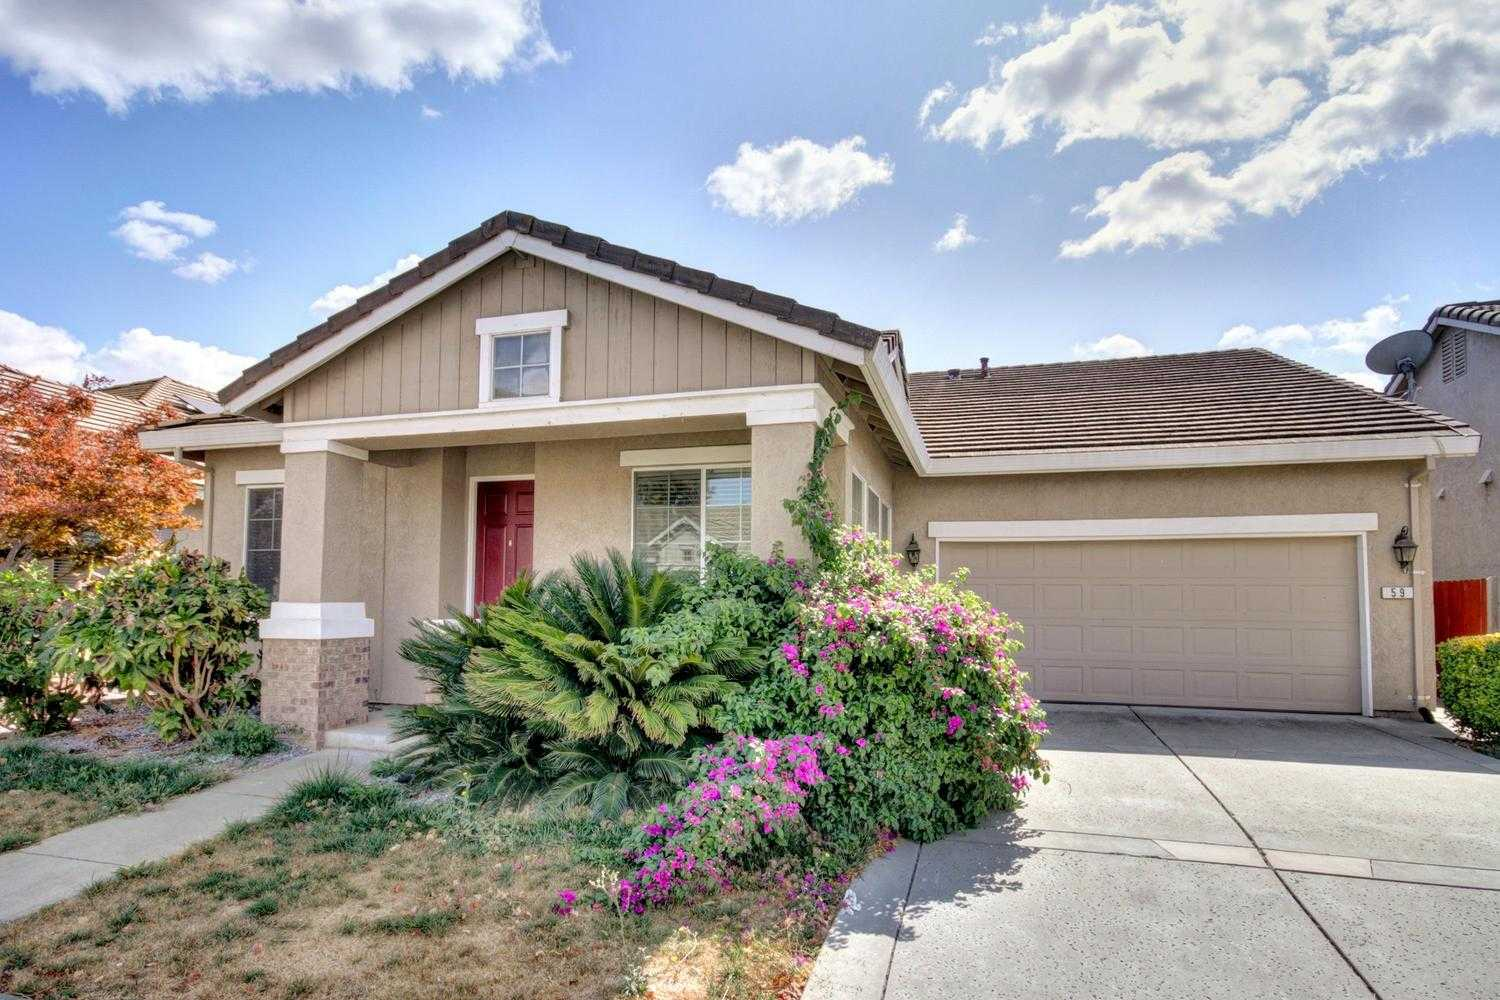 $419,900 - 4Br/2Ba -  for Sale in Gateway West Village 02, Sacramento